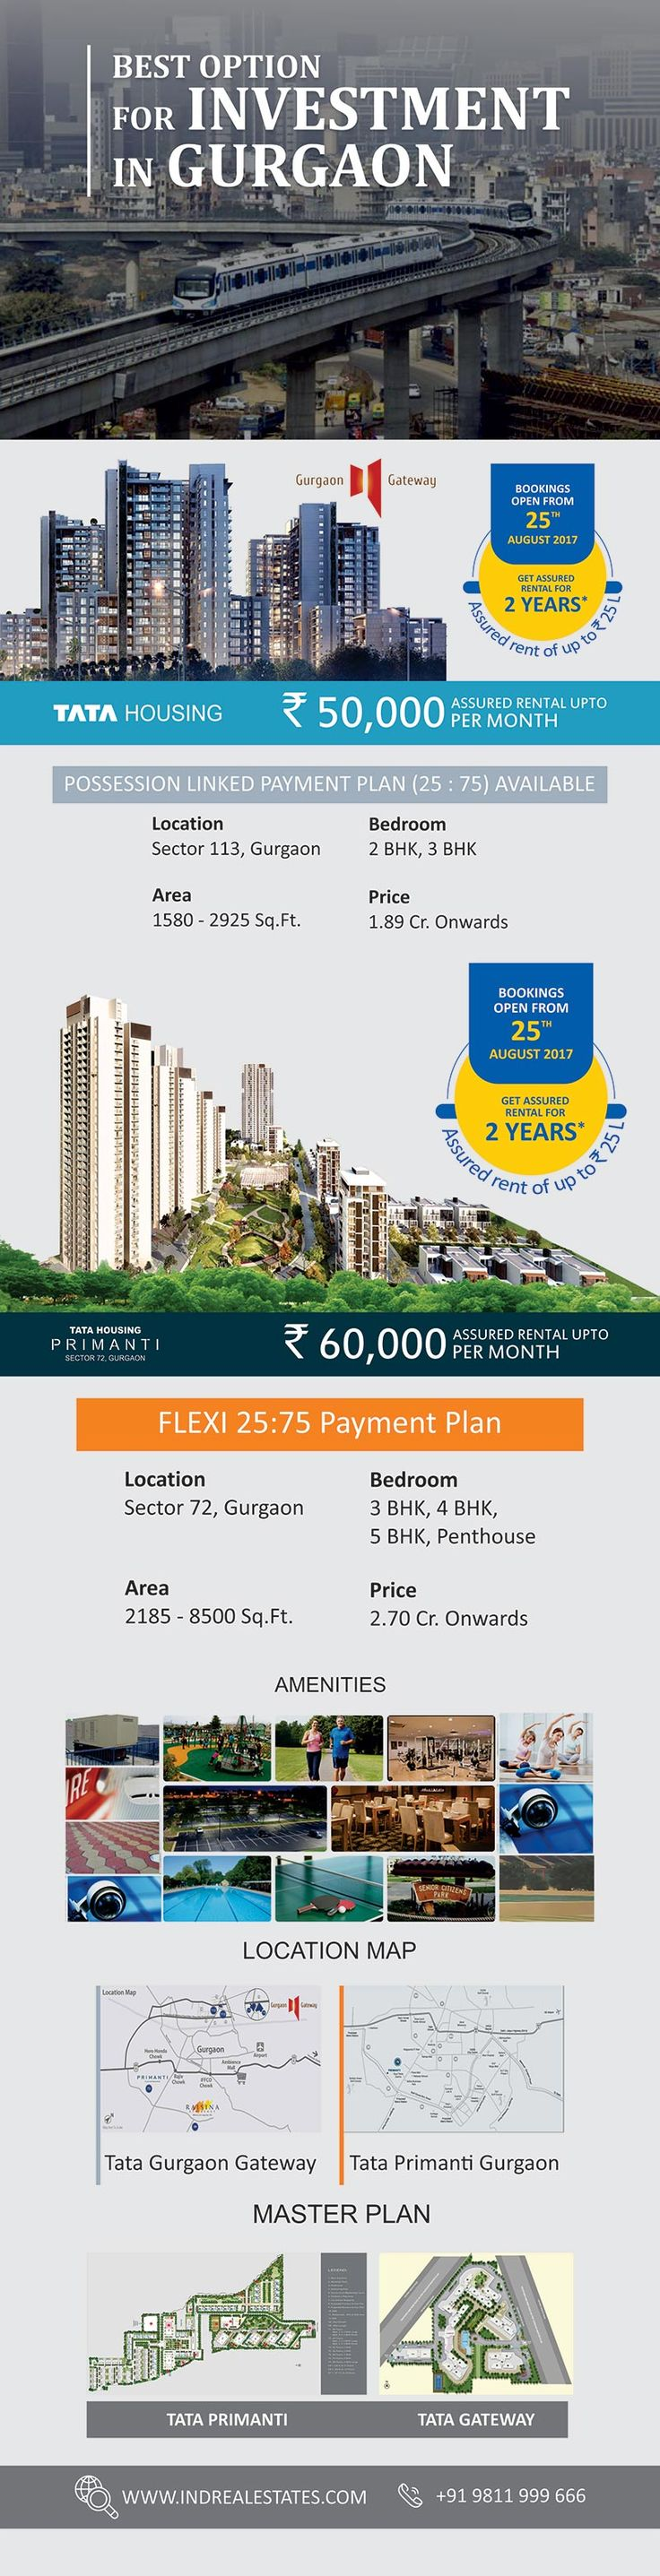 Gurgaon with a big heart is welcoming the most renowned builder Tata Housing. He is entering with two grandeurs with attractive plans. Tata Gurgaon Gateway has an amazing PLP Plan 25:75 with assured rental for 2 years and Tata Primanti with Flexi 25:75 Payment Plan and Rs. 60,000 Assured Rental.